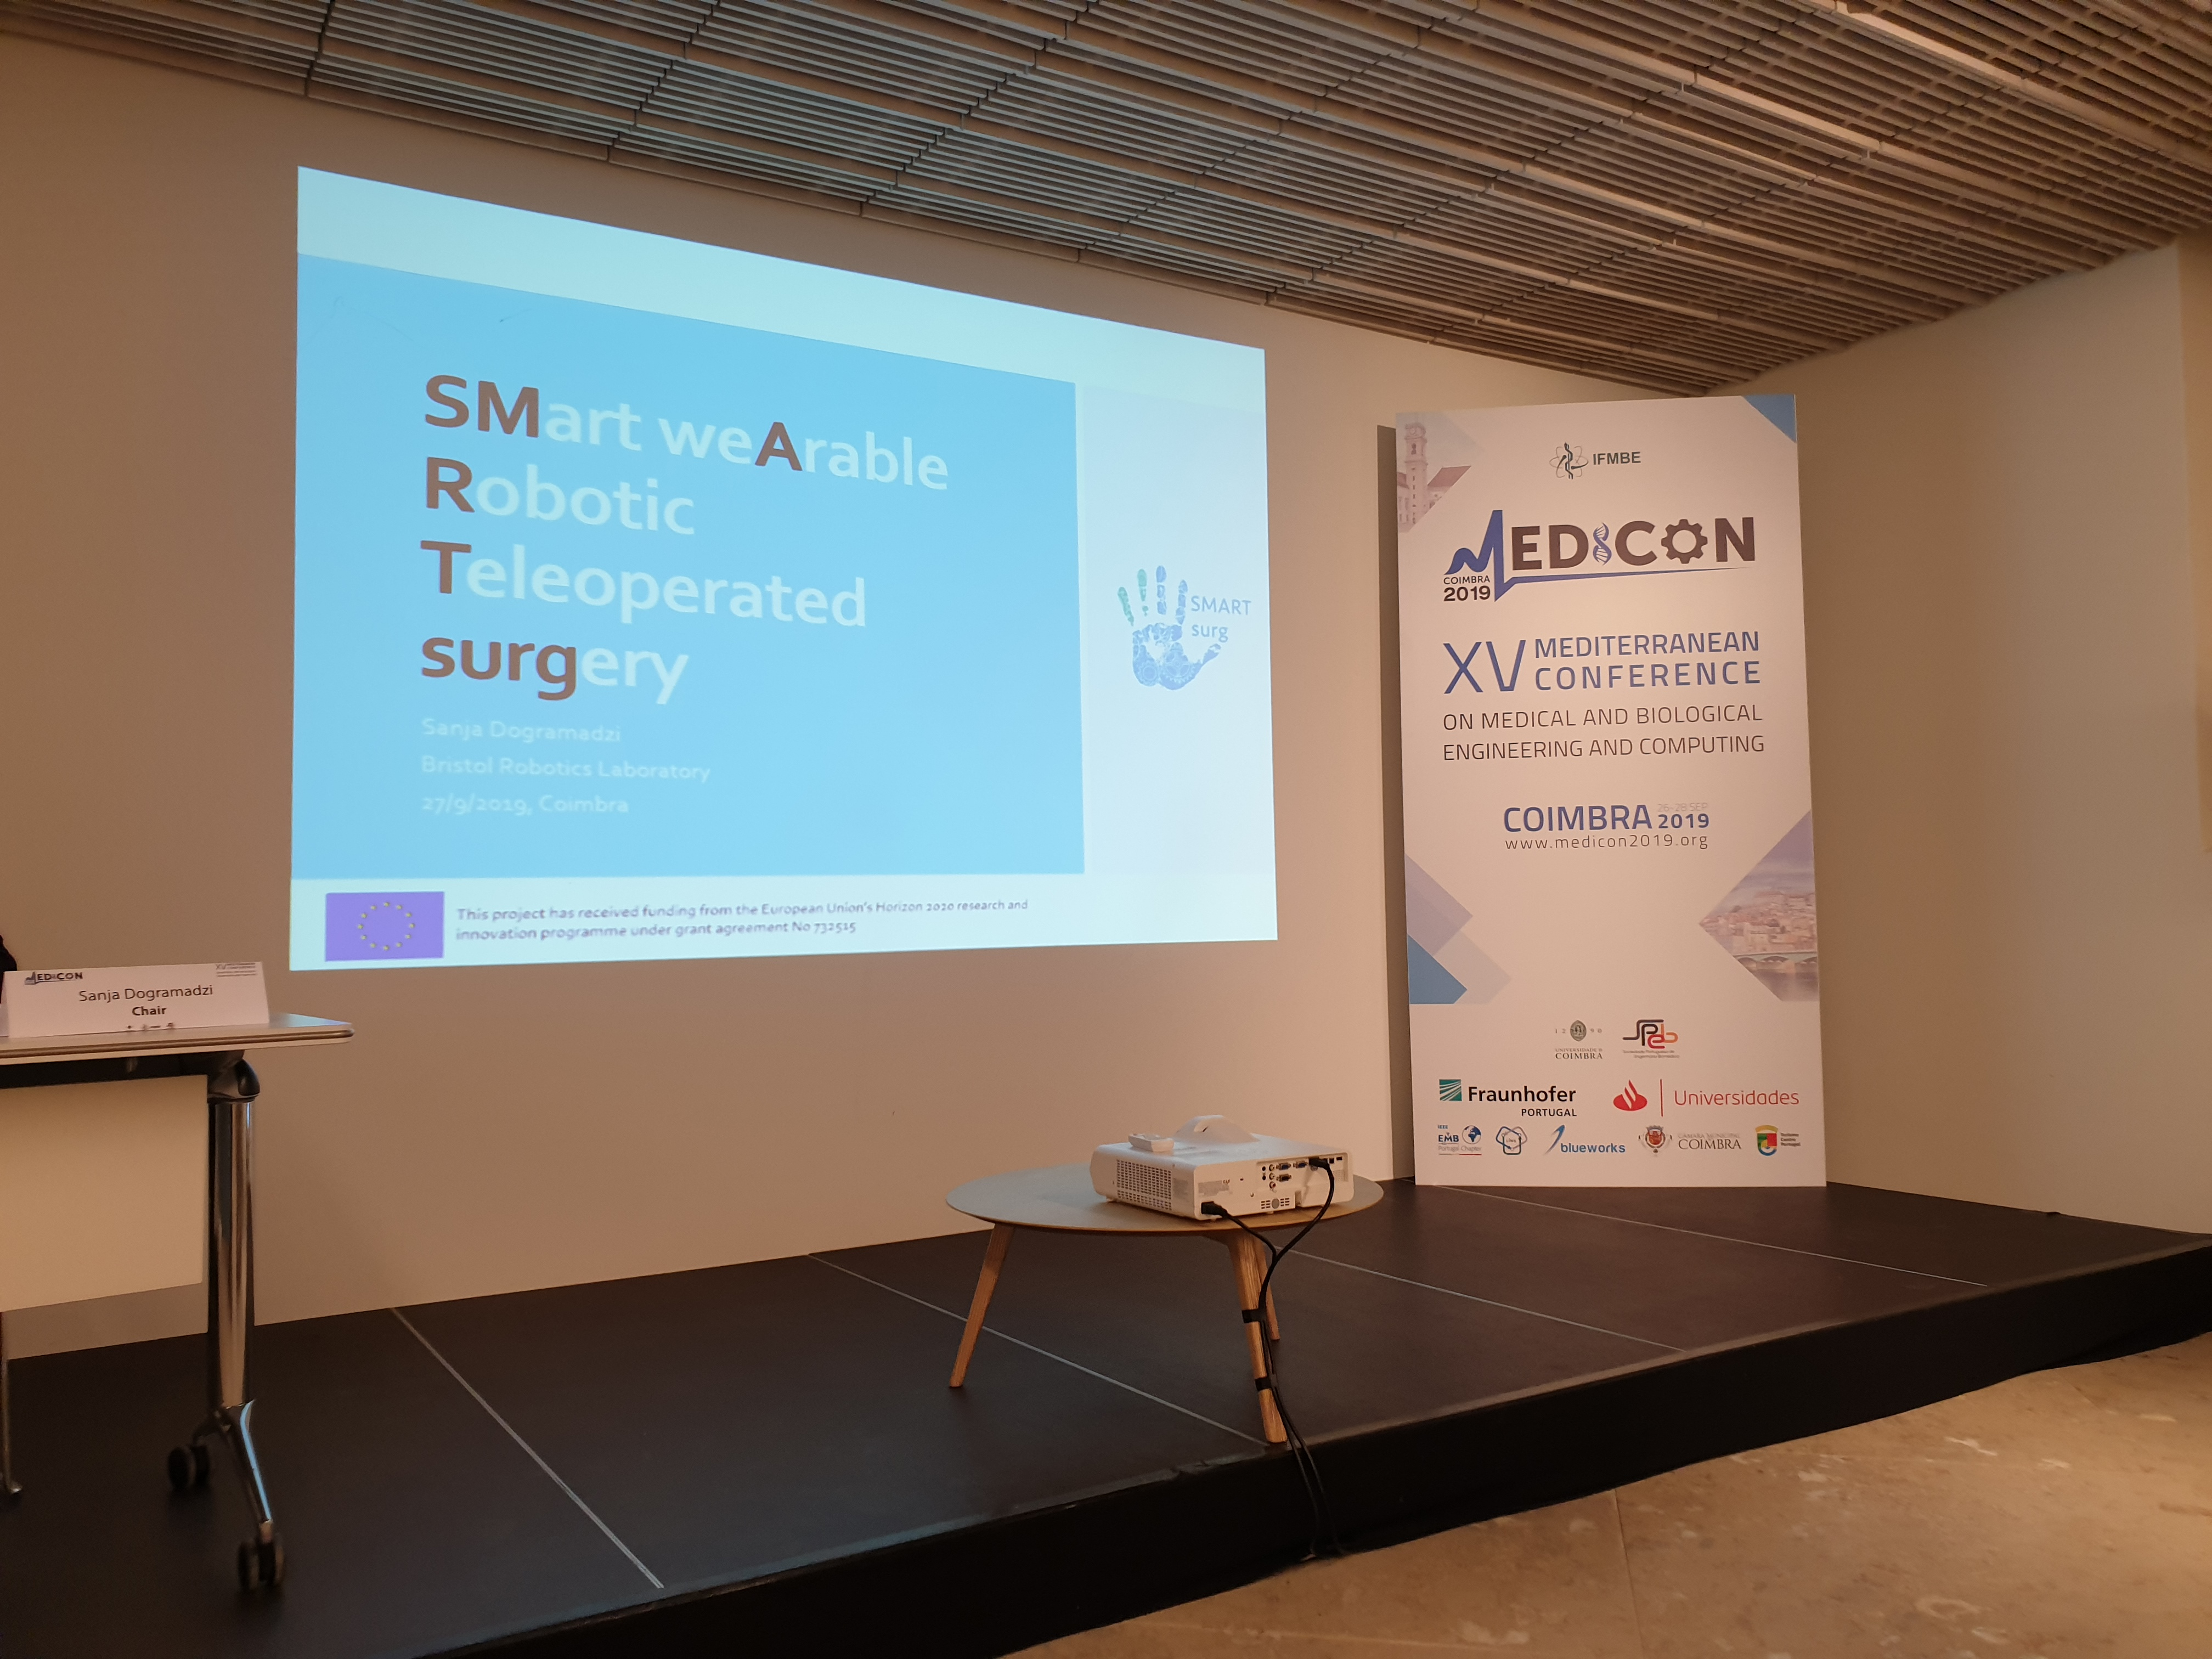 The SMARTsurg project experience @ MEDICON conference 2019